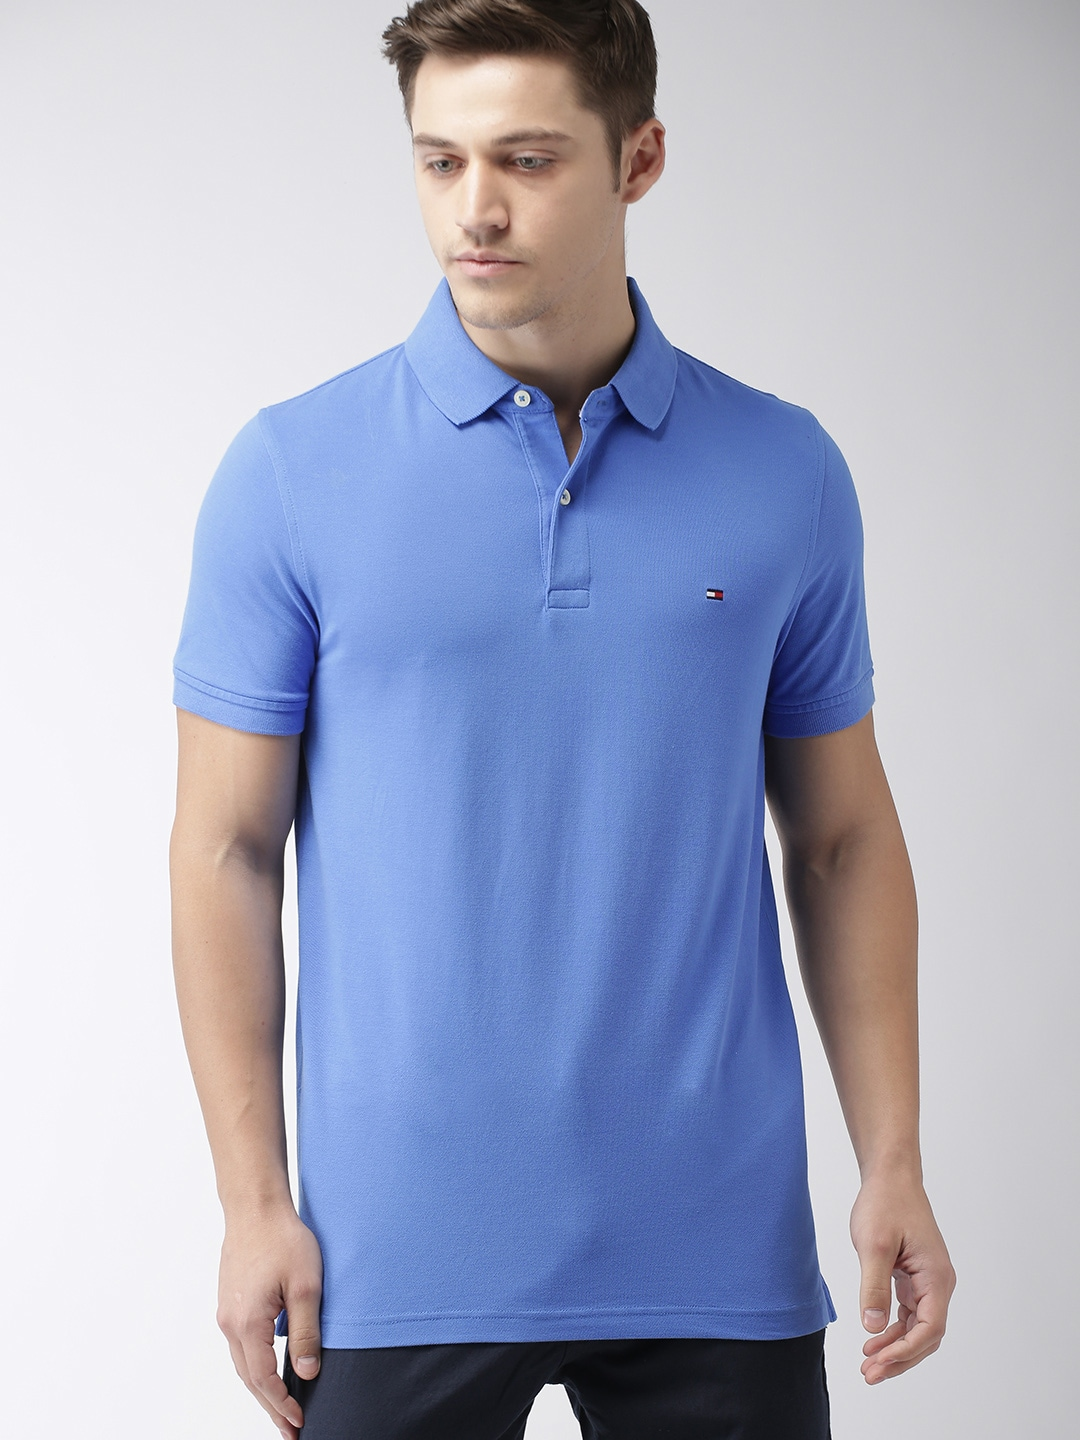 9947eda14d4 Casual - Buy Casual online in India